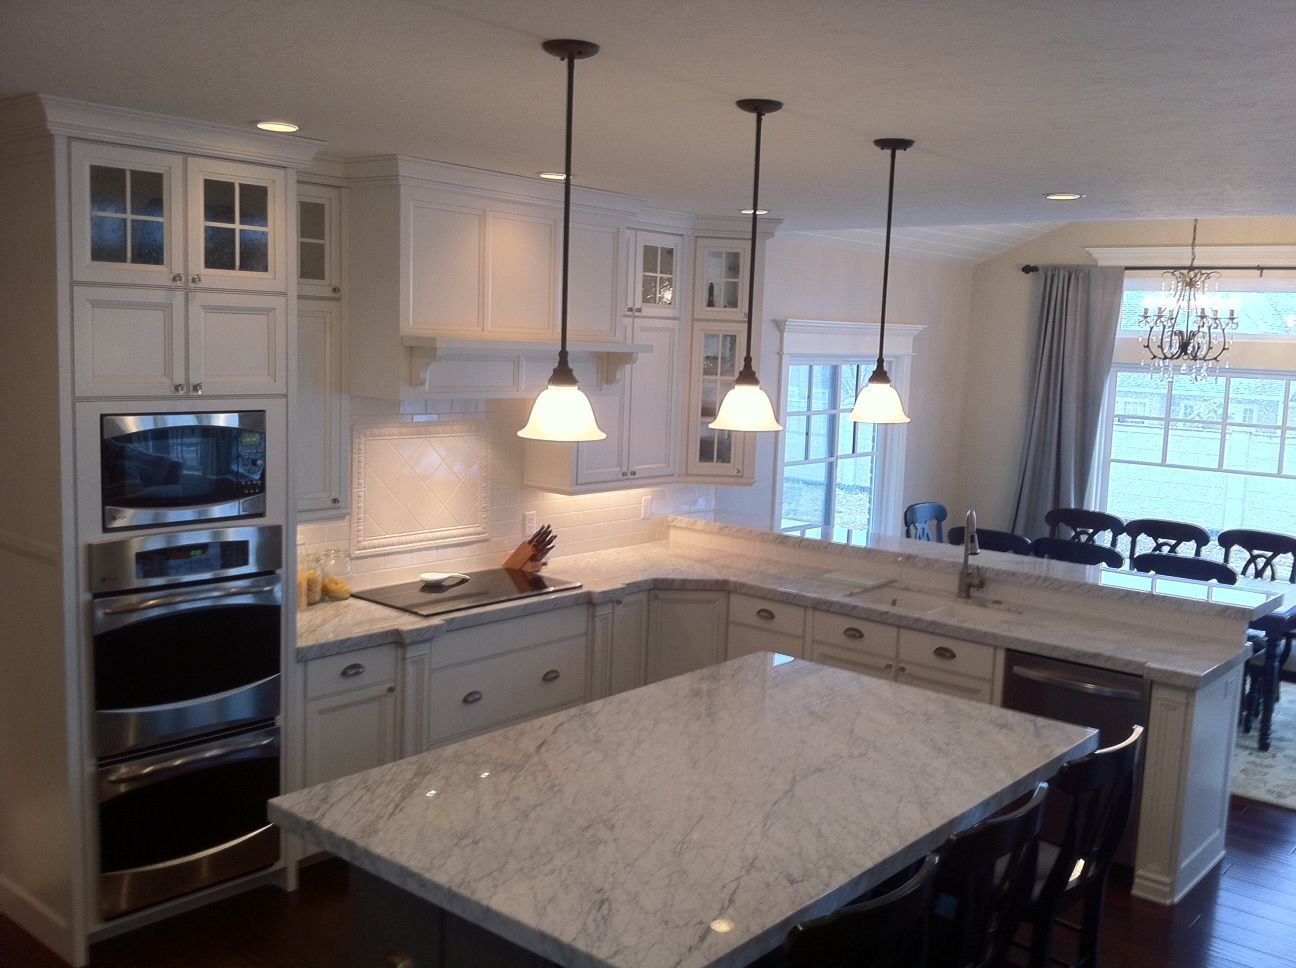 Top Rated Kitchen And Bathroom Remodeling Contractors In